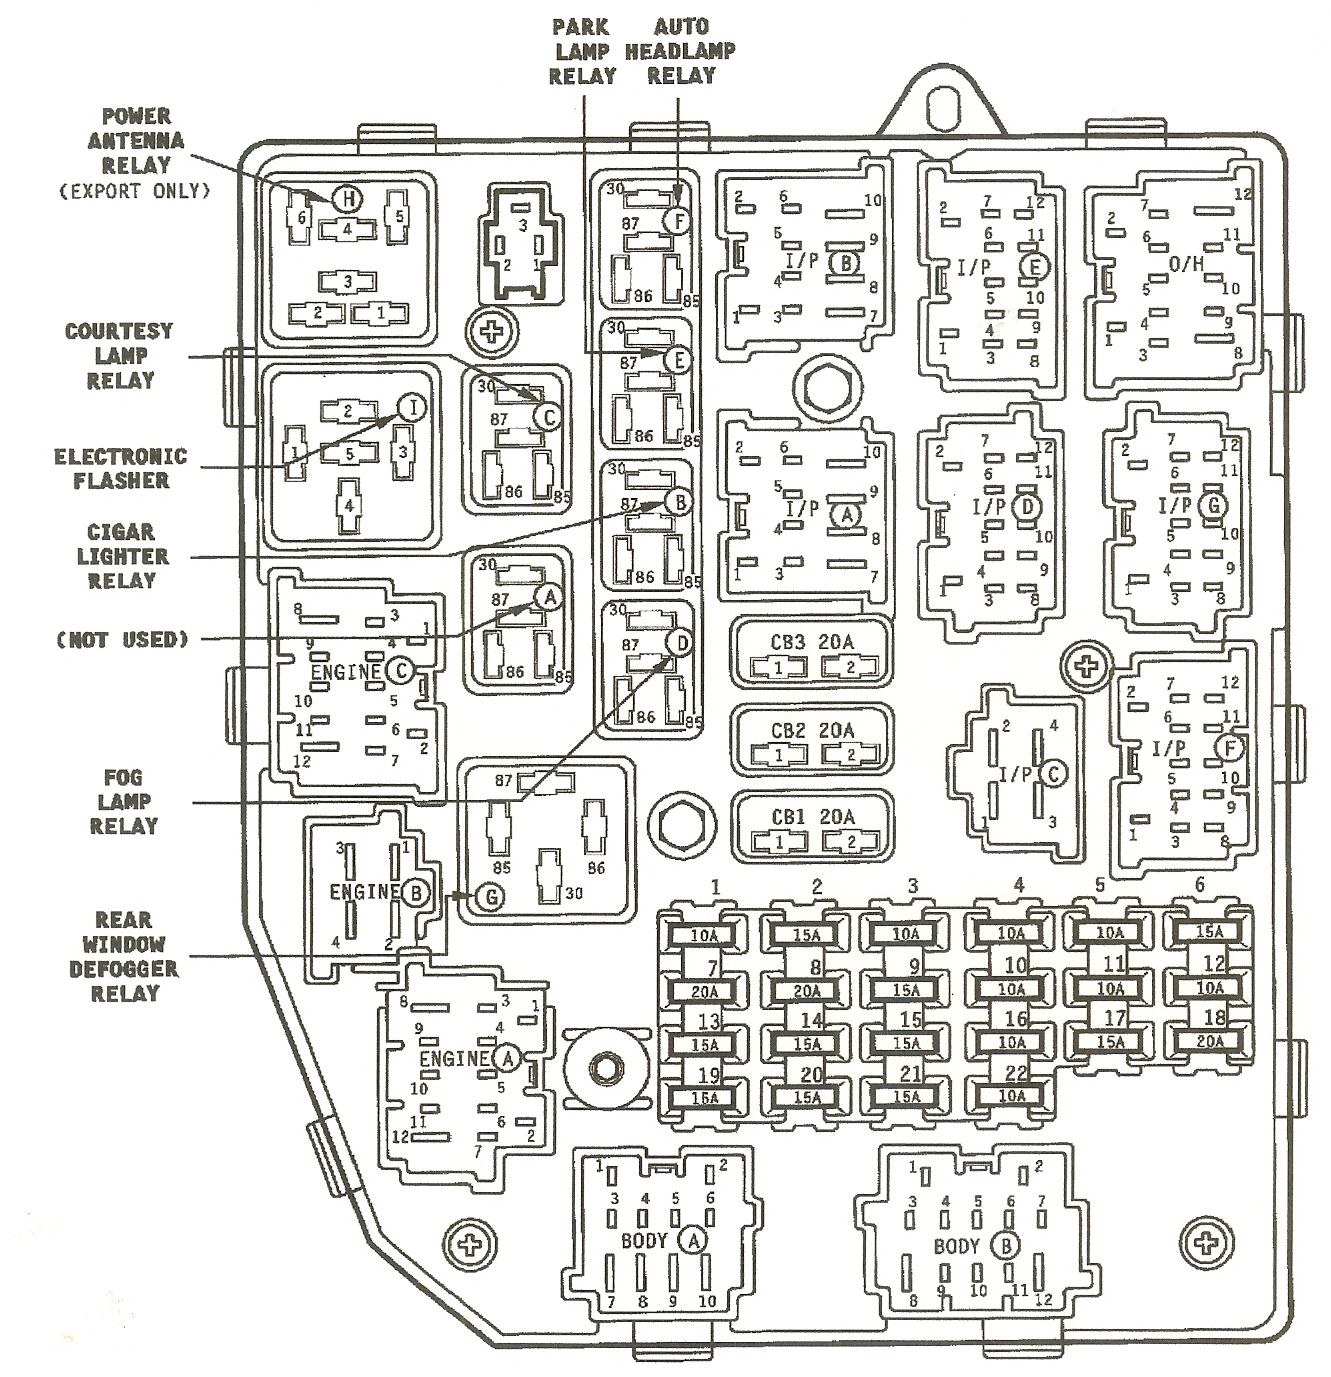 hight resolution of jeep zj fuse box diagram simple wiring schema 1996 jeep cherokee fuse diagram jeep zj fuse diagram